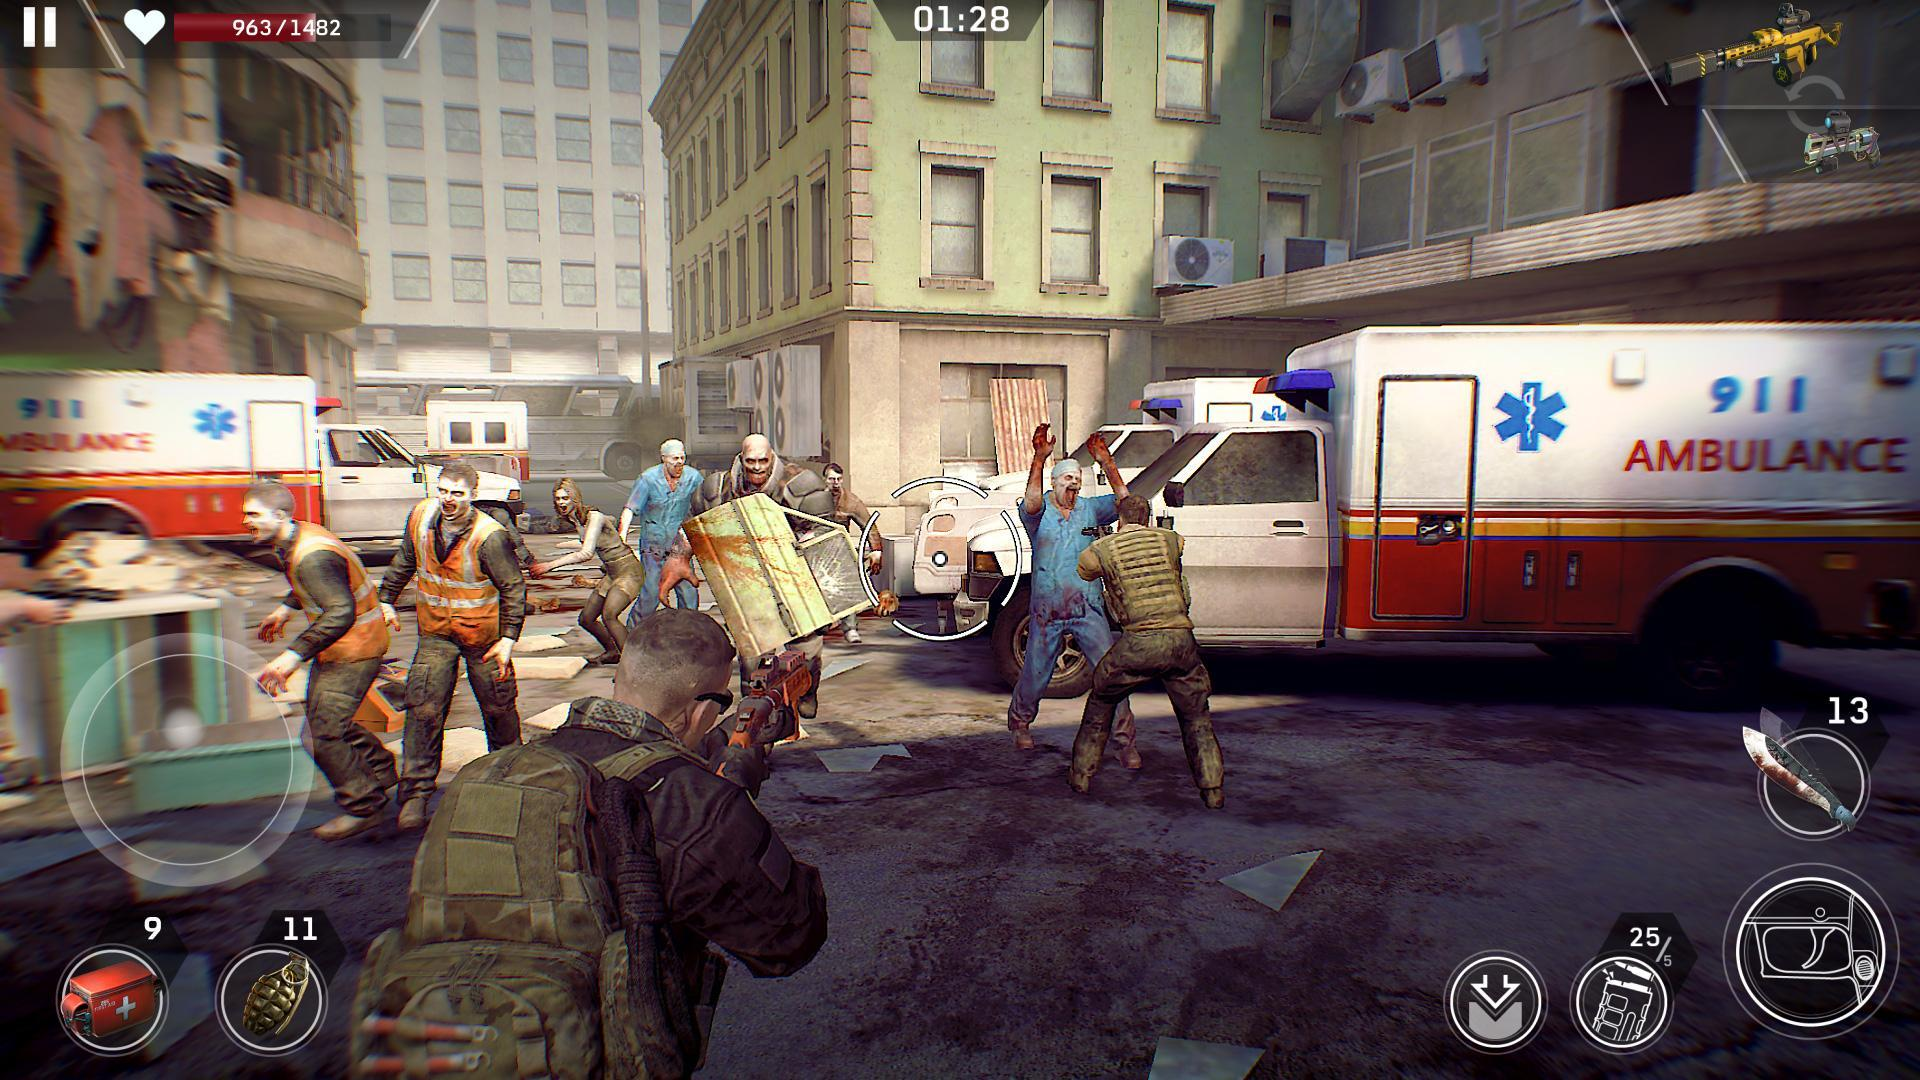 Left to Survive Zombie Survival PvP Shooter 4.2.0 Screenshot 15